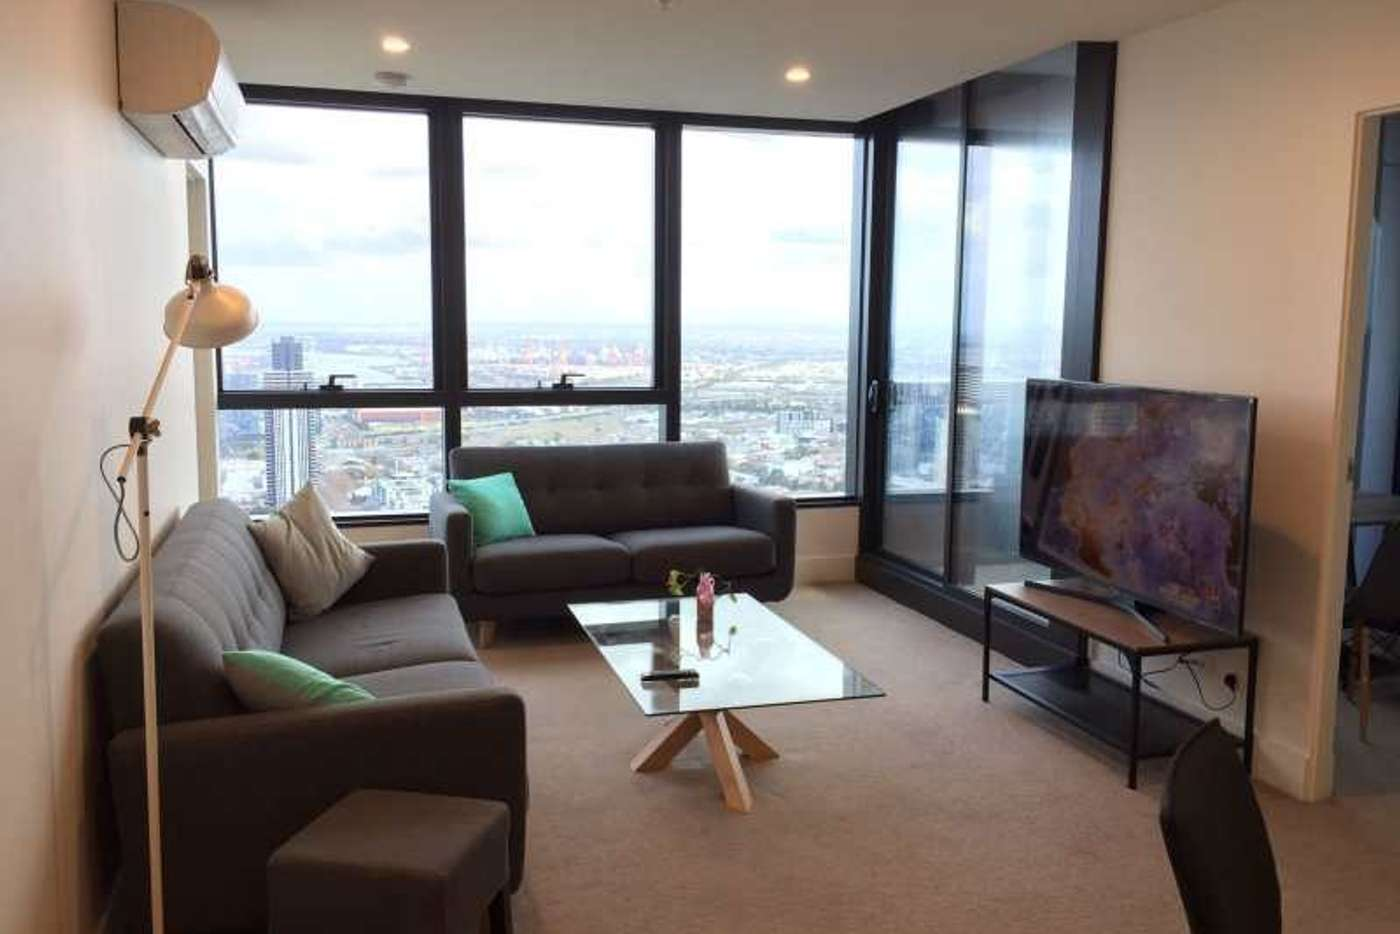 Main view of Homely apartment listing, 4503/500 Elizabeth Street, Melbourne VIC 3000